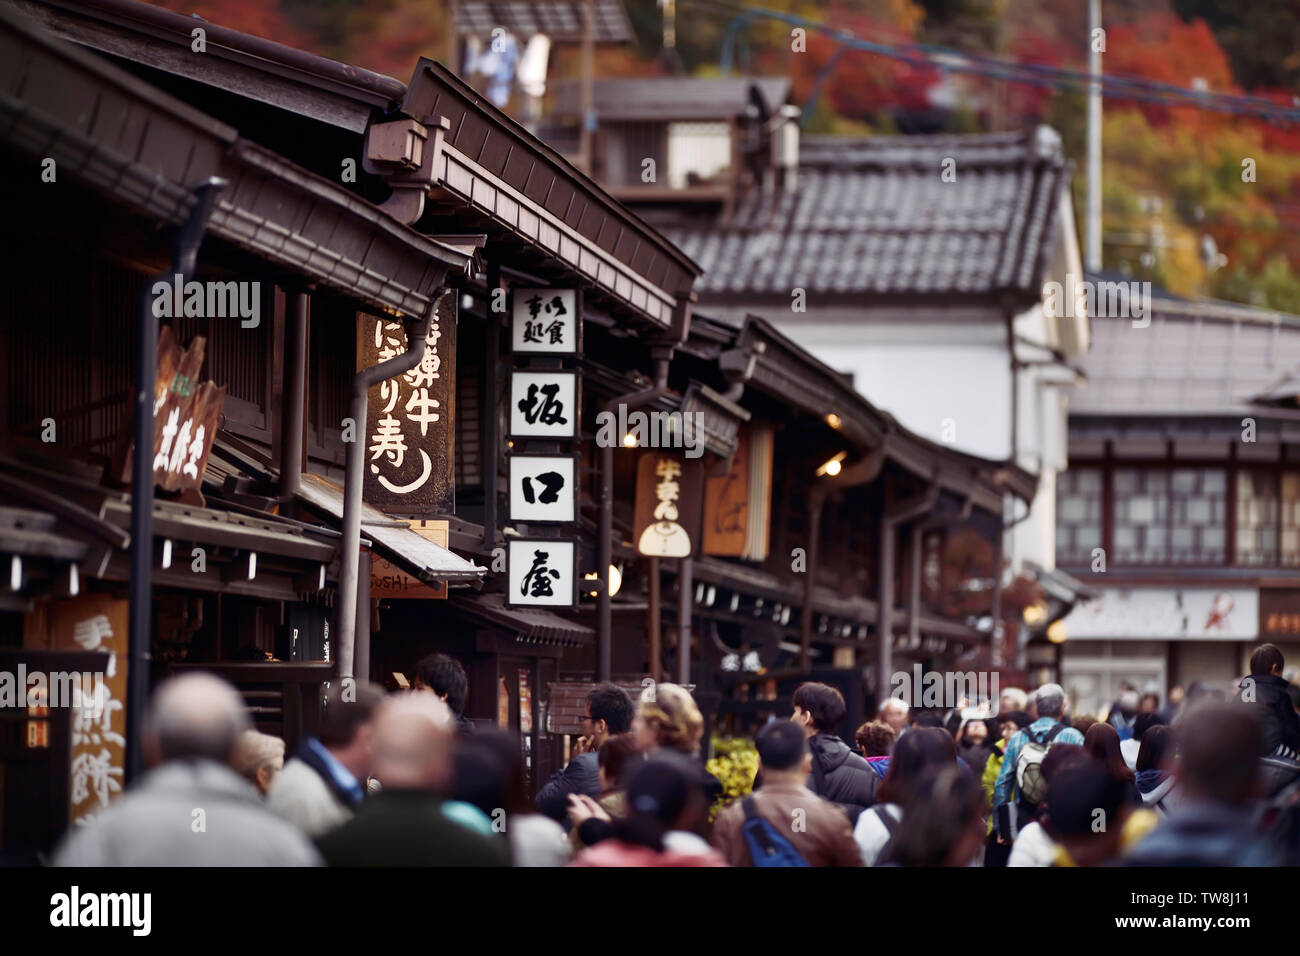 Signs of shops and restaurants at Kami-Sannomachi, old town market street of Takayama city busy with tourists and visitors in autumn. Kamisannomachi i - Stock Image